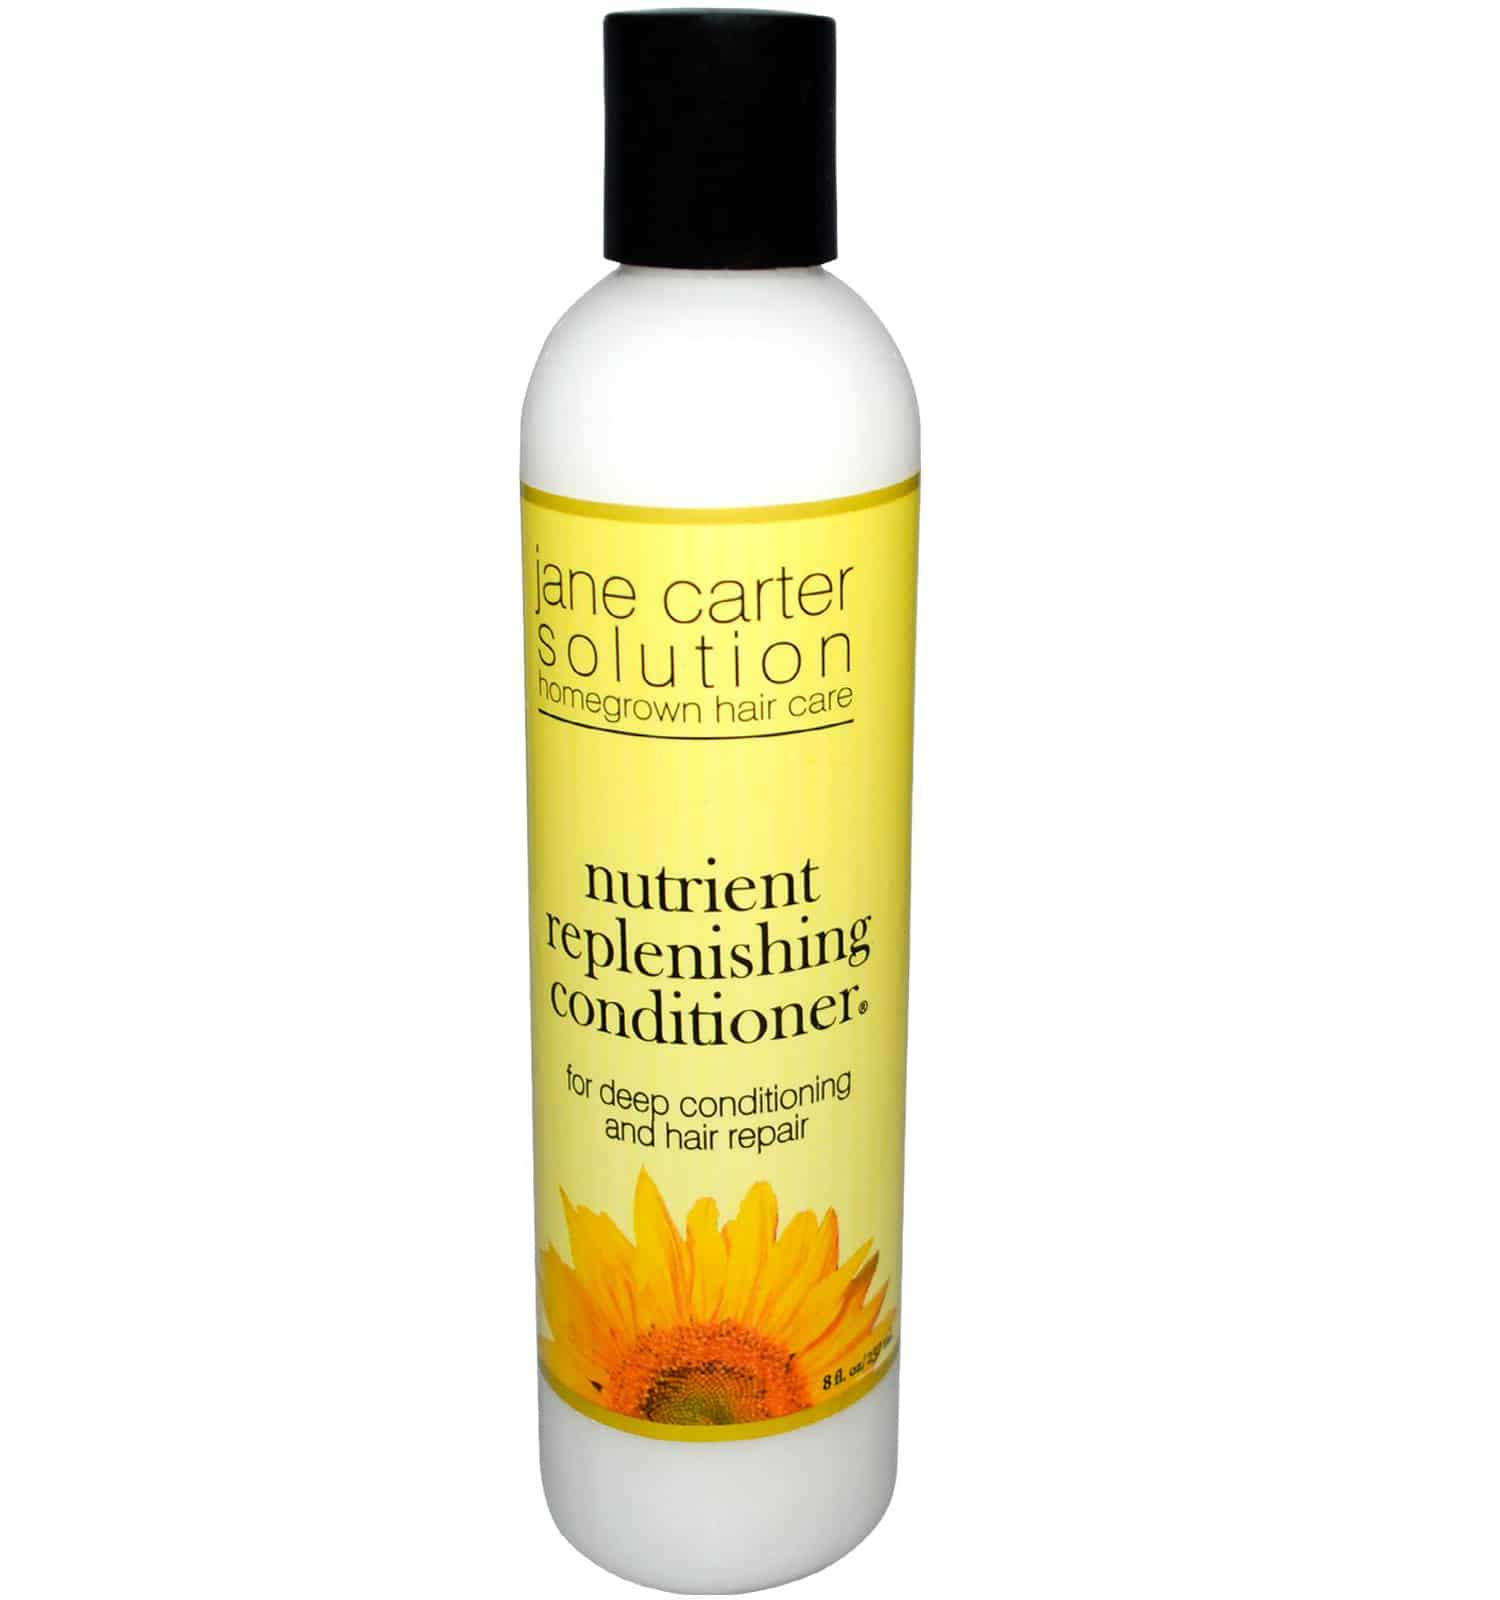 Jane Carter Nutrient Replenishing Conditioner 8oz